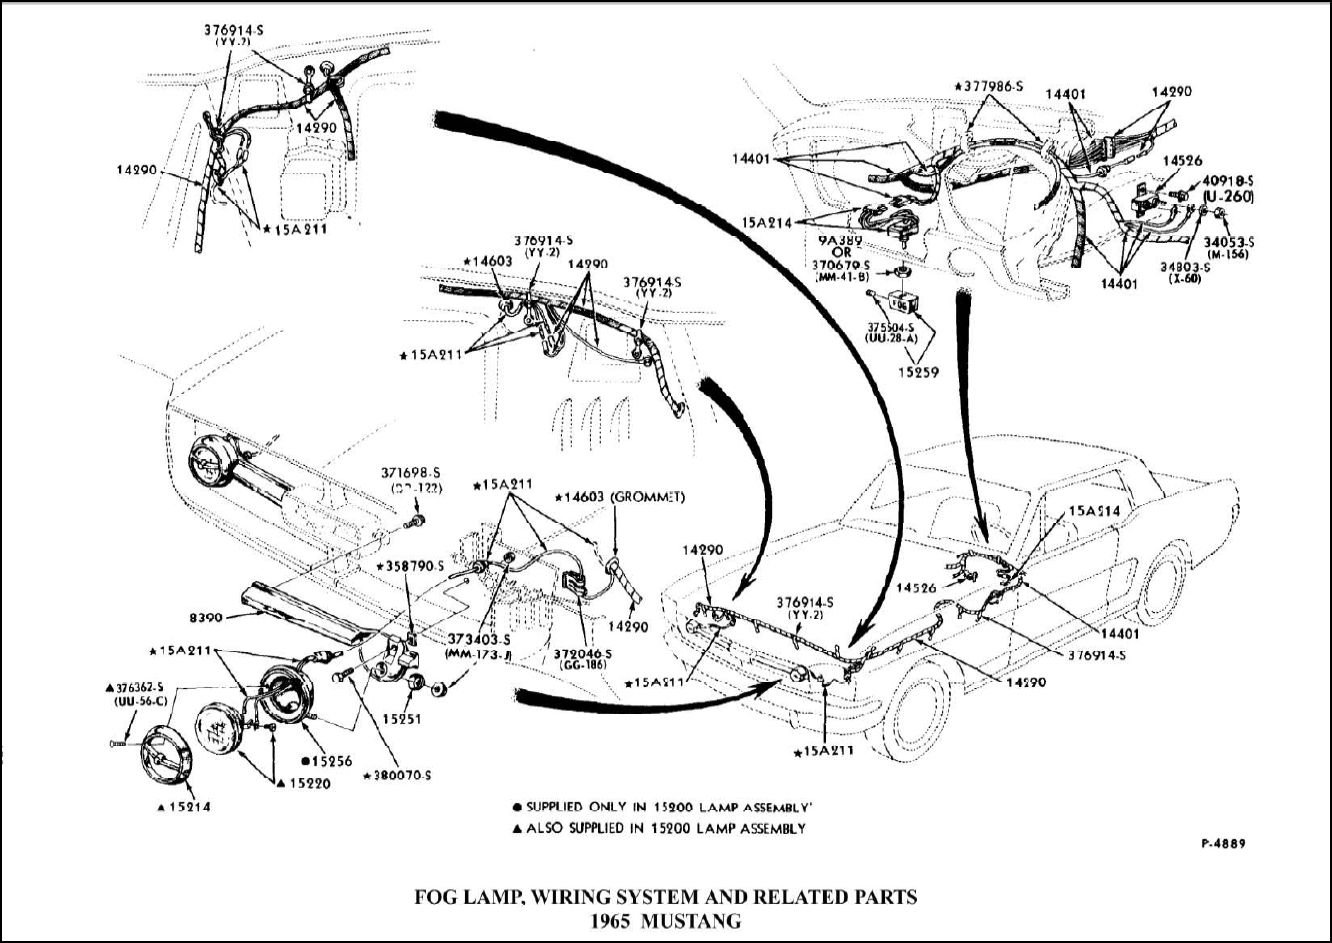 65 Mustang Gt Wiring Diagram Data 1964 1 2 Ford Diagrams Harness For 1965 Schematics Headlight Switch